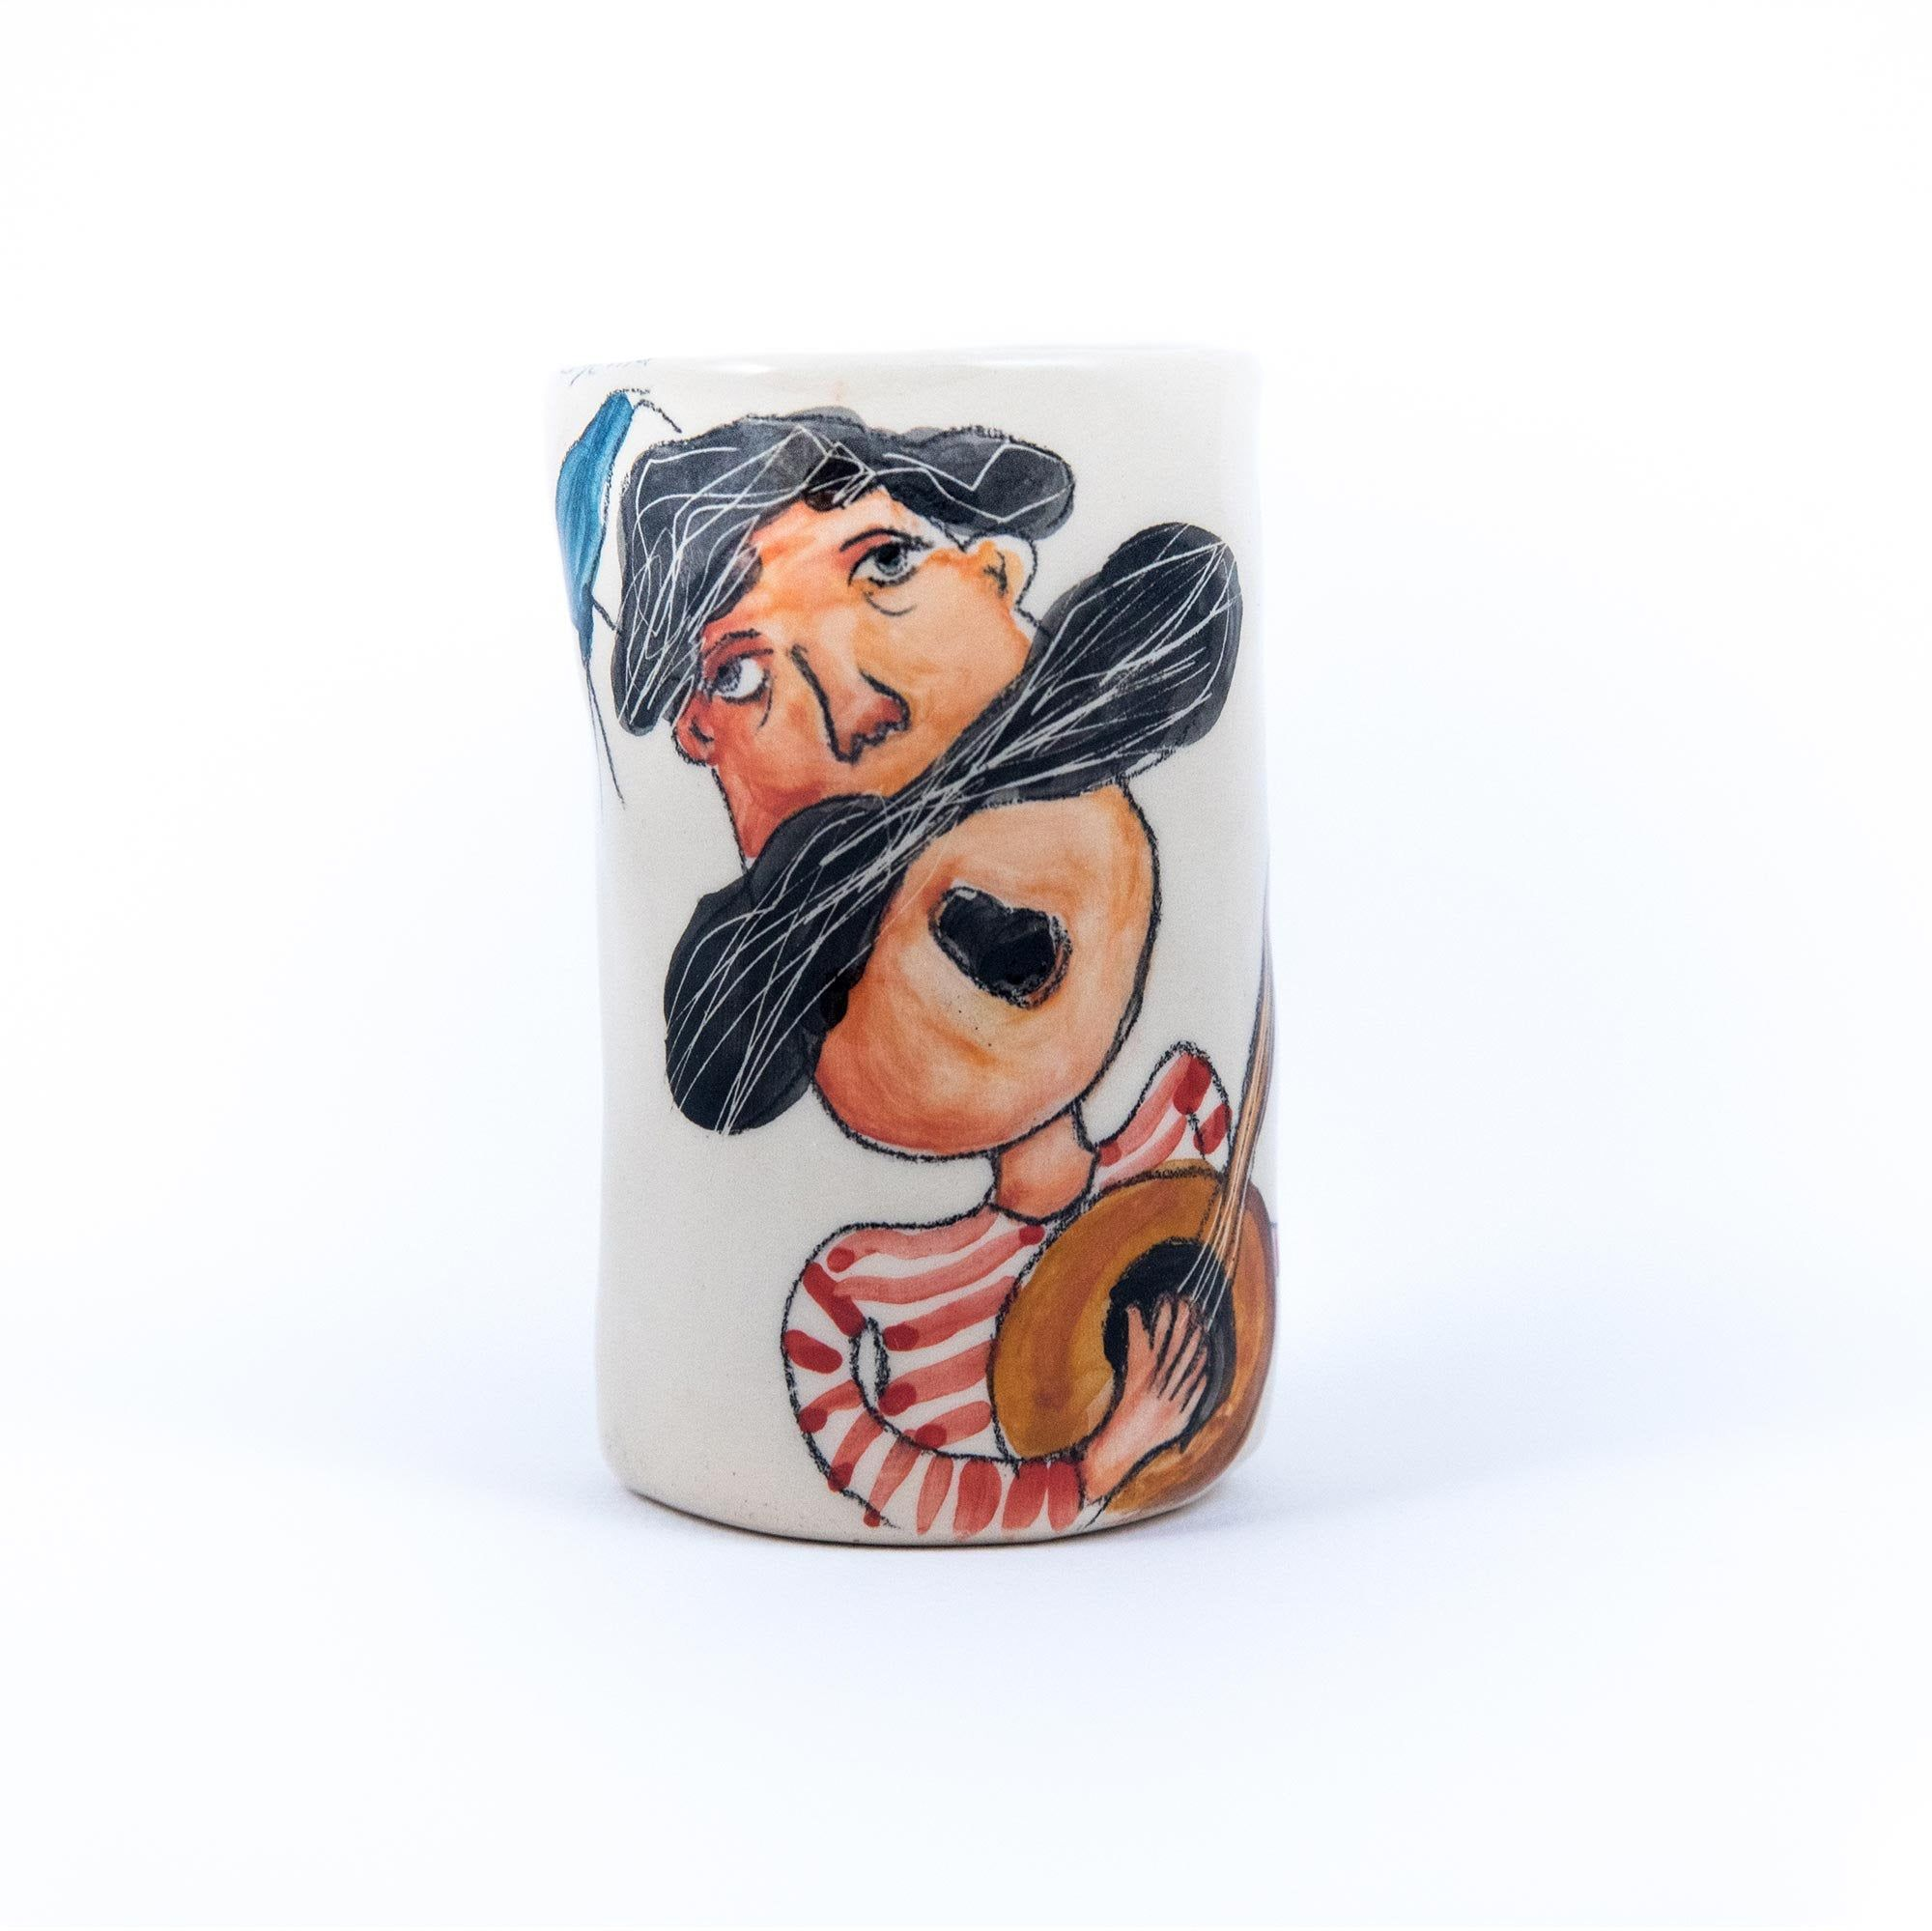 Singing sailor pottery wine glass, customizable gift for him. This handmade glass/unique ceramic art is an ideal gift for him